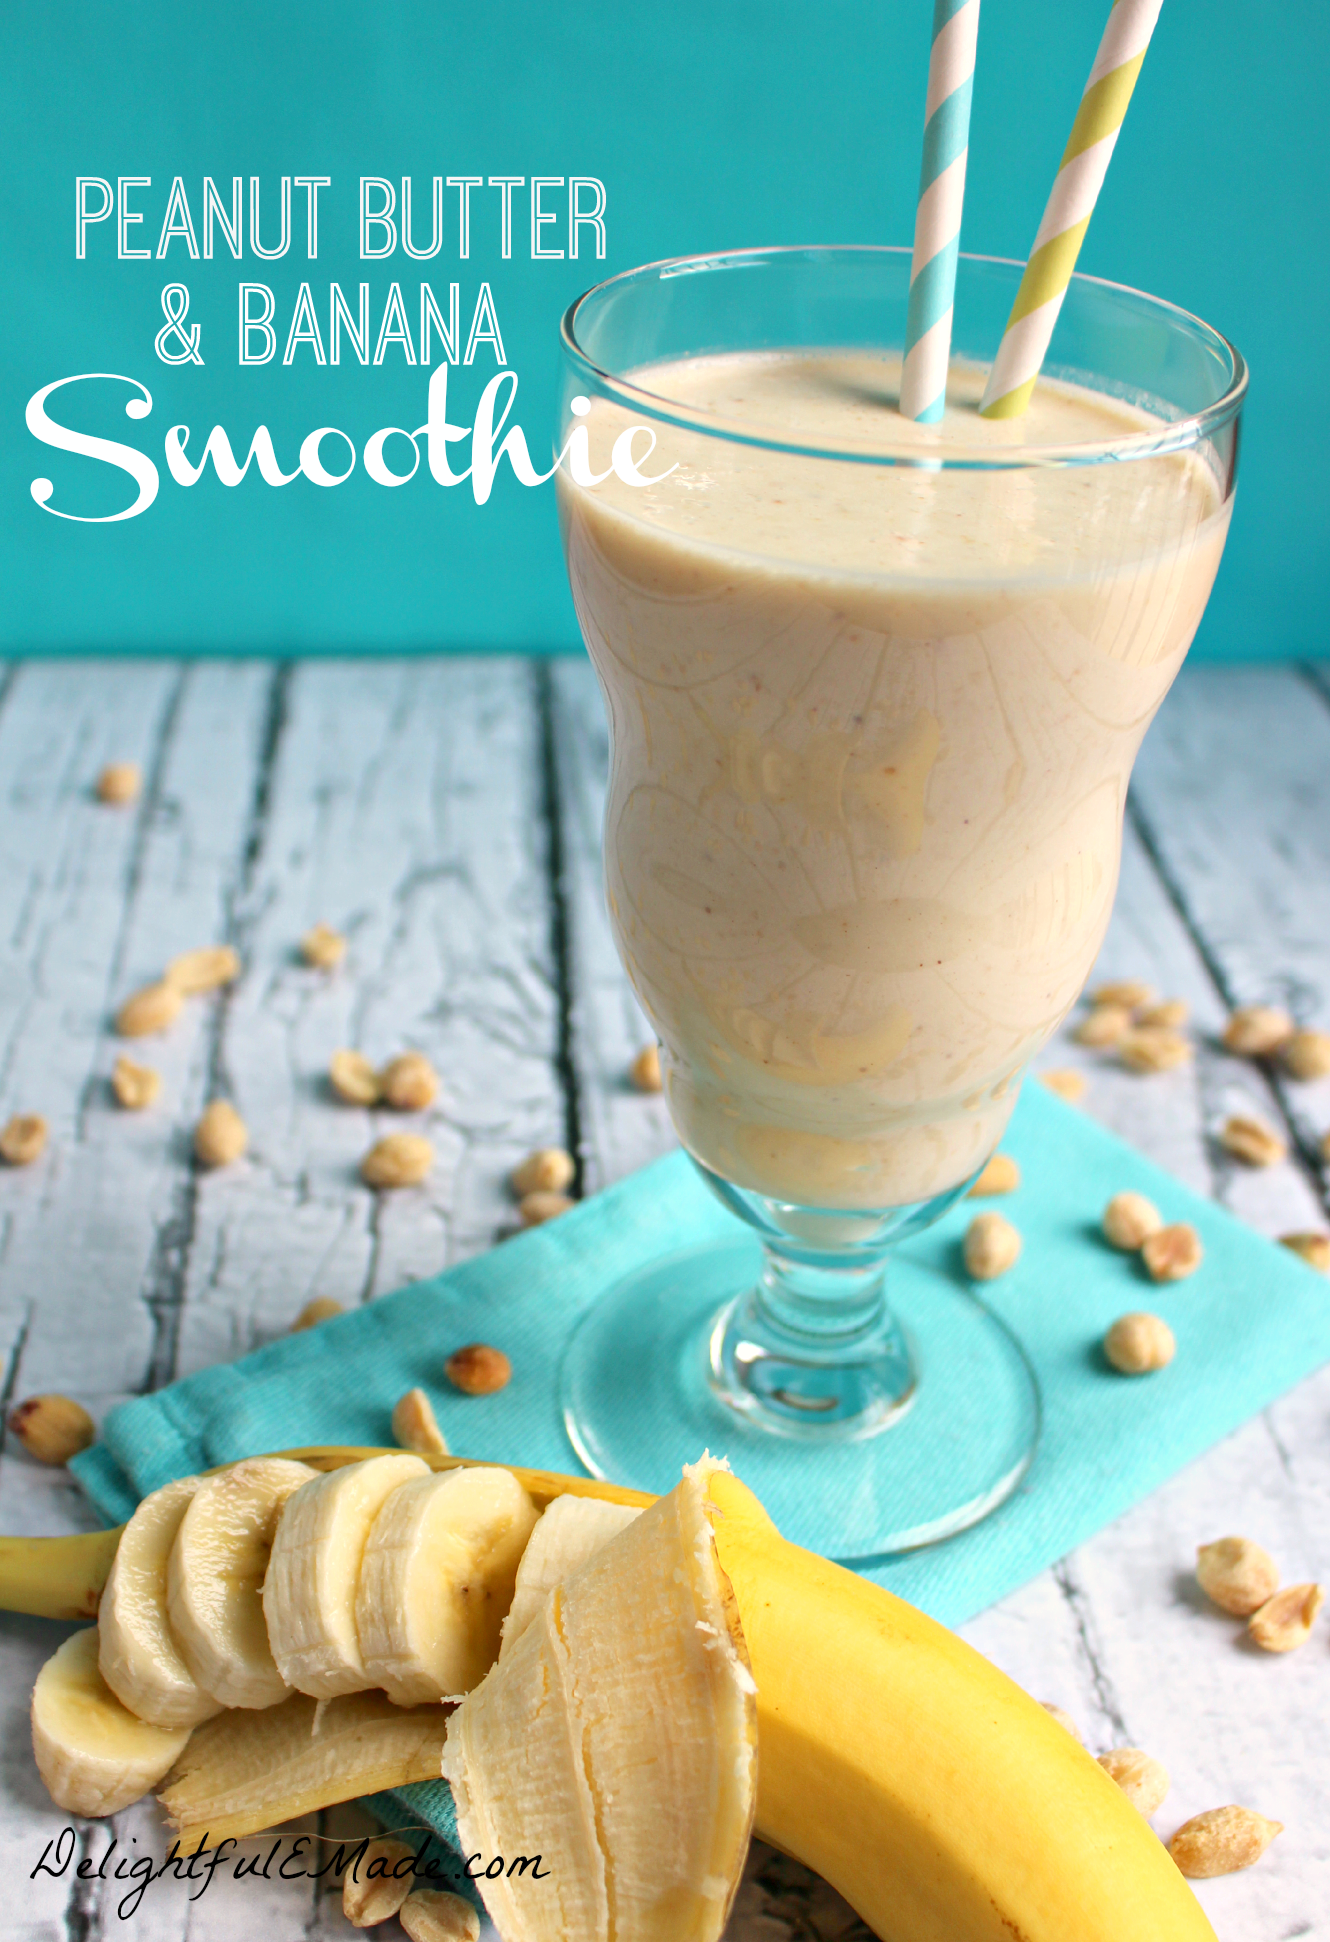 Tremendous Peanut Butter Banana Smoothie By Delightfulemade Peanut Butter Banana Smoothie Delightful E Made Peanut Butter Smoothie Healthy Peanut Butter Smoothie Bowl nice food Peanut Butter Smoothie